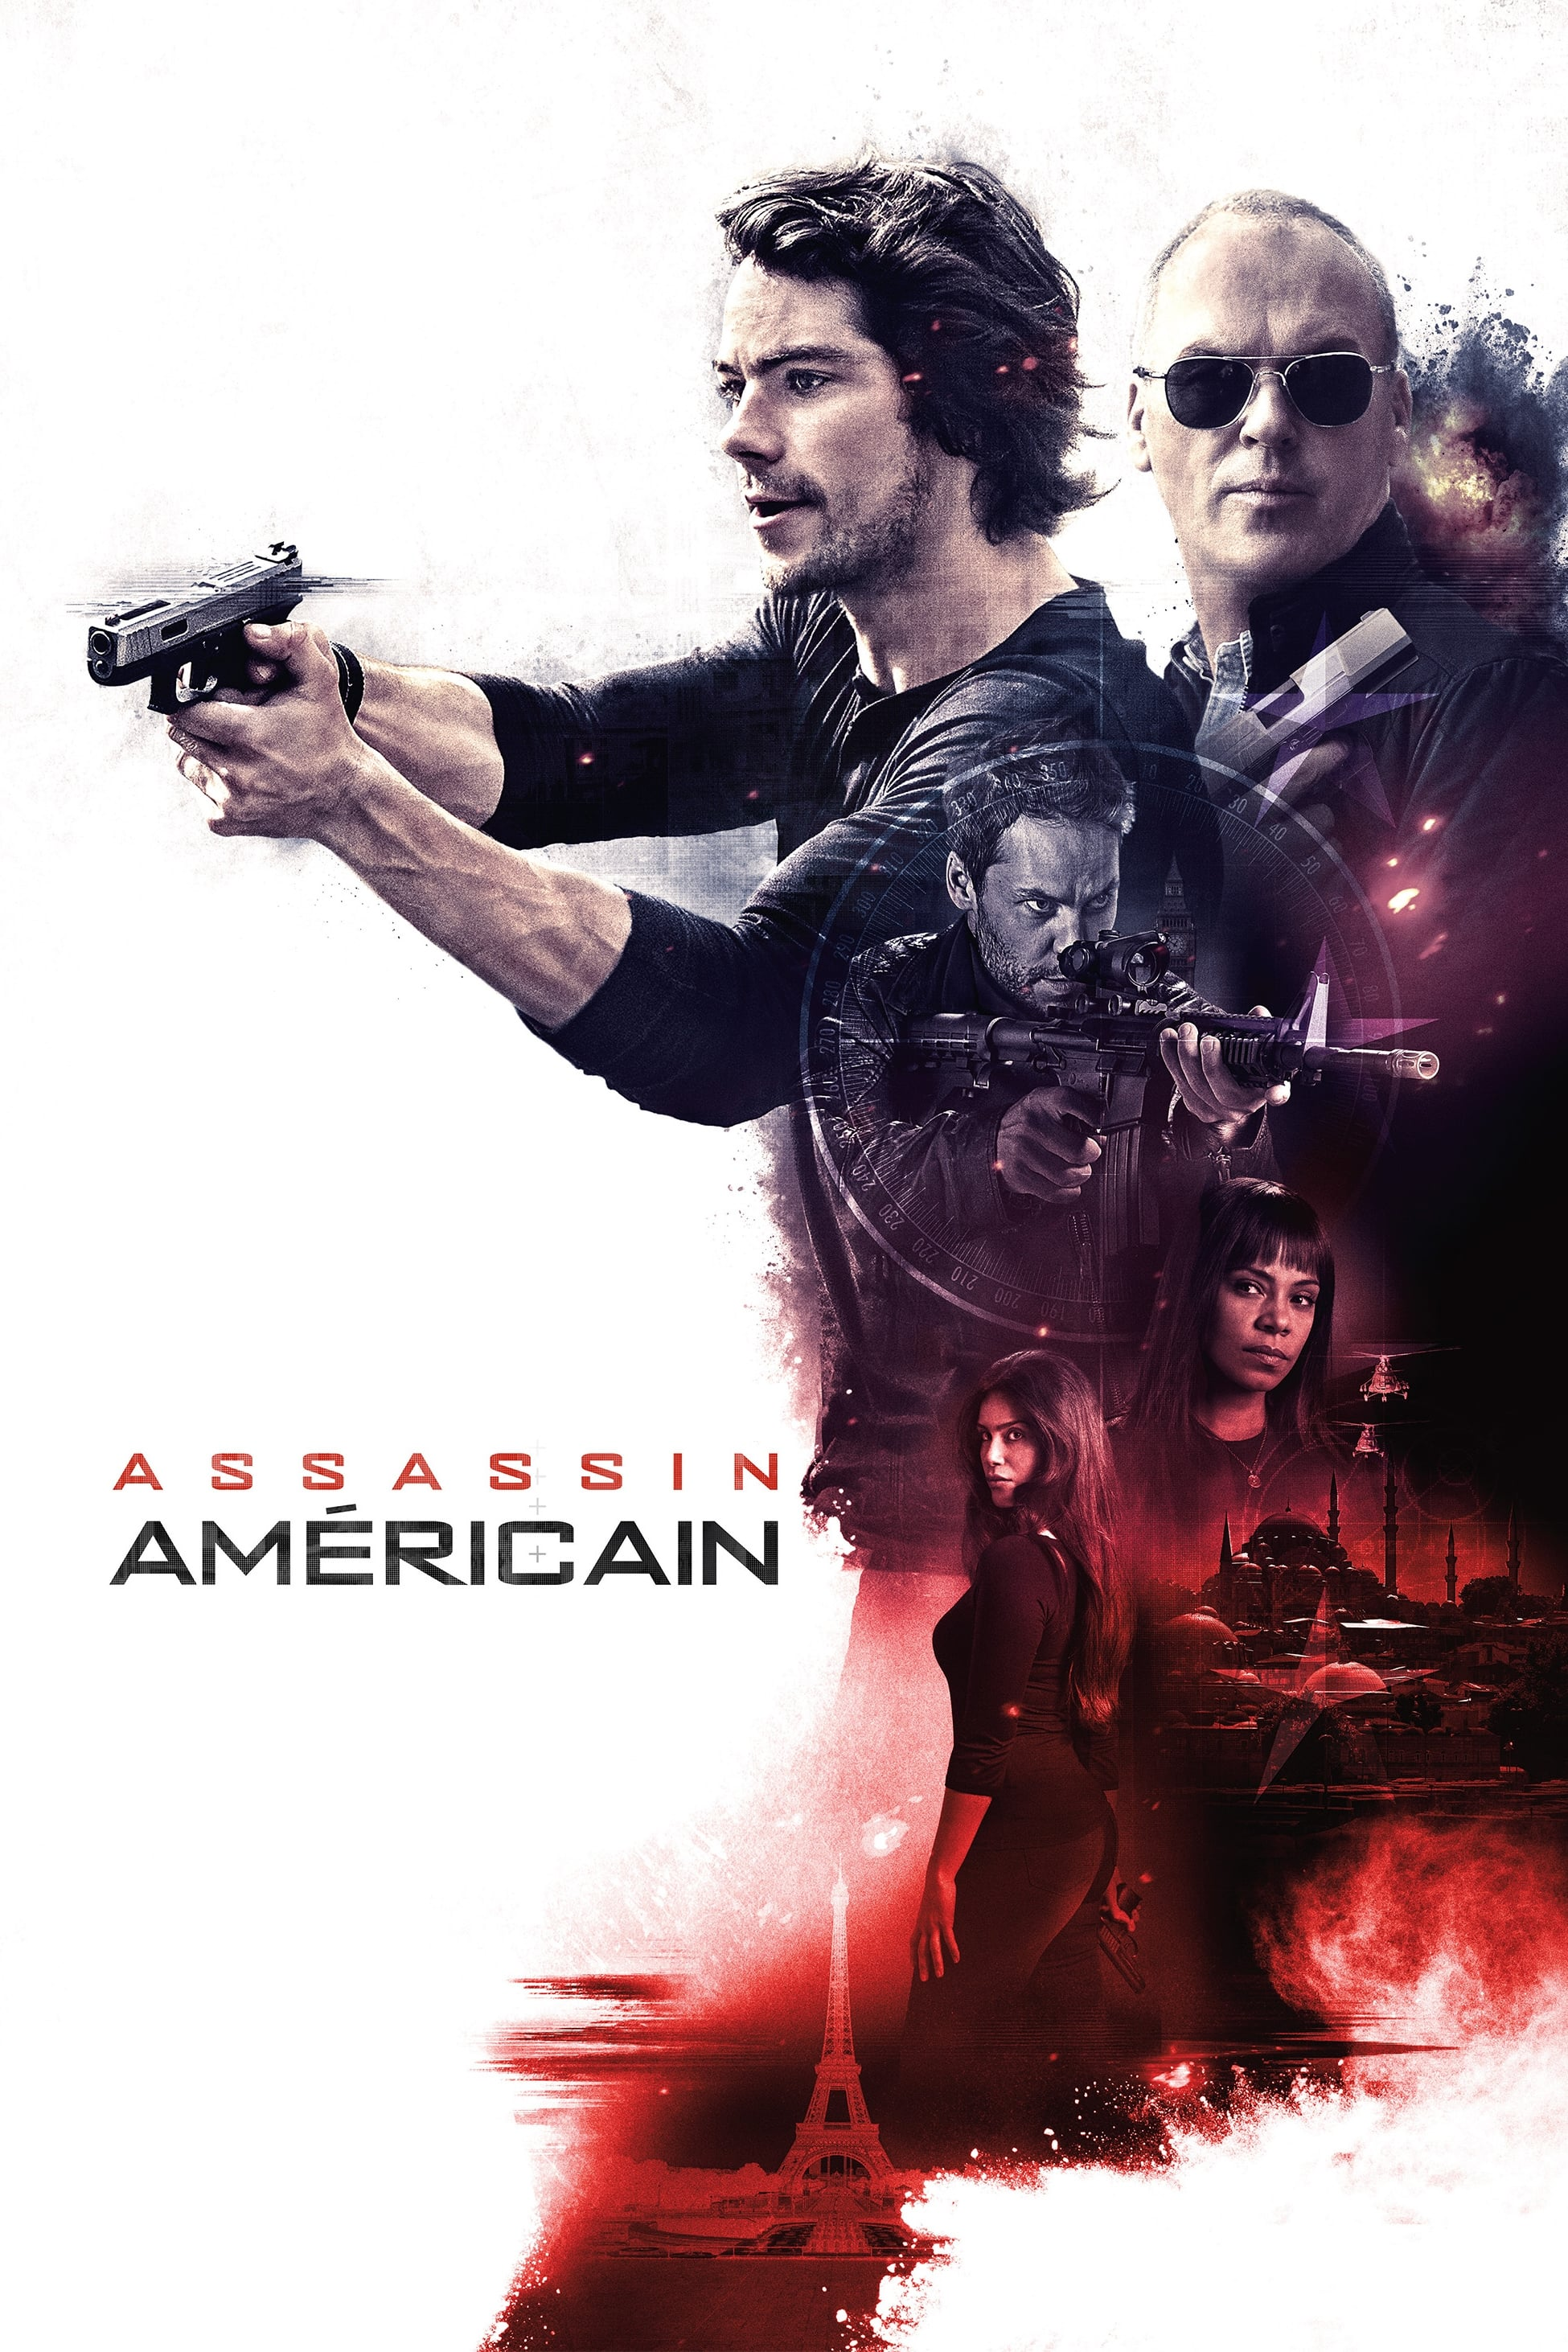 Poster and image movie Film Asasin American - American Assassin - American Assassin -  2017